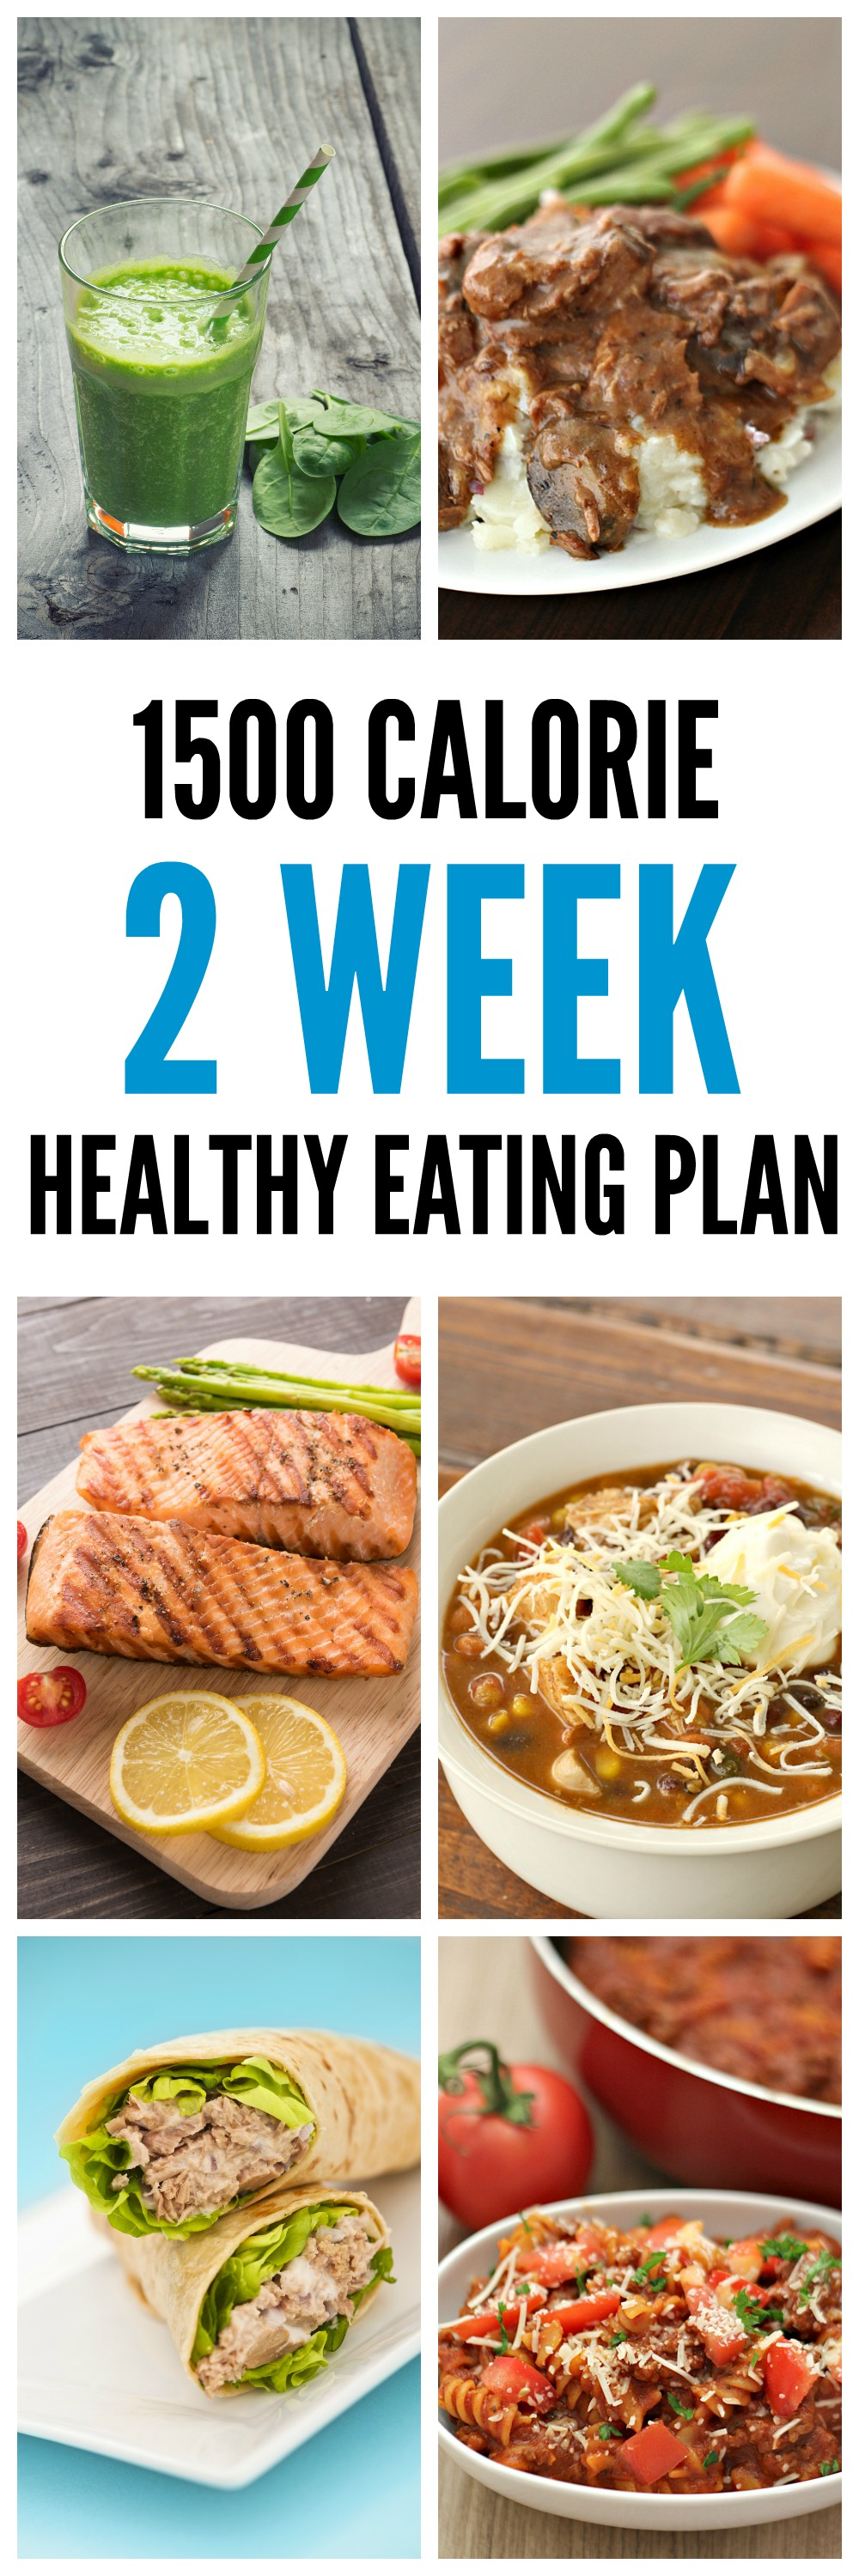 1500 Calorie 2 Week Healthy Eating Plan